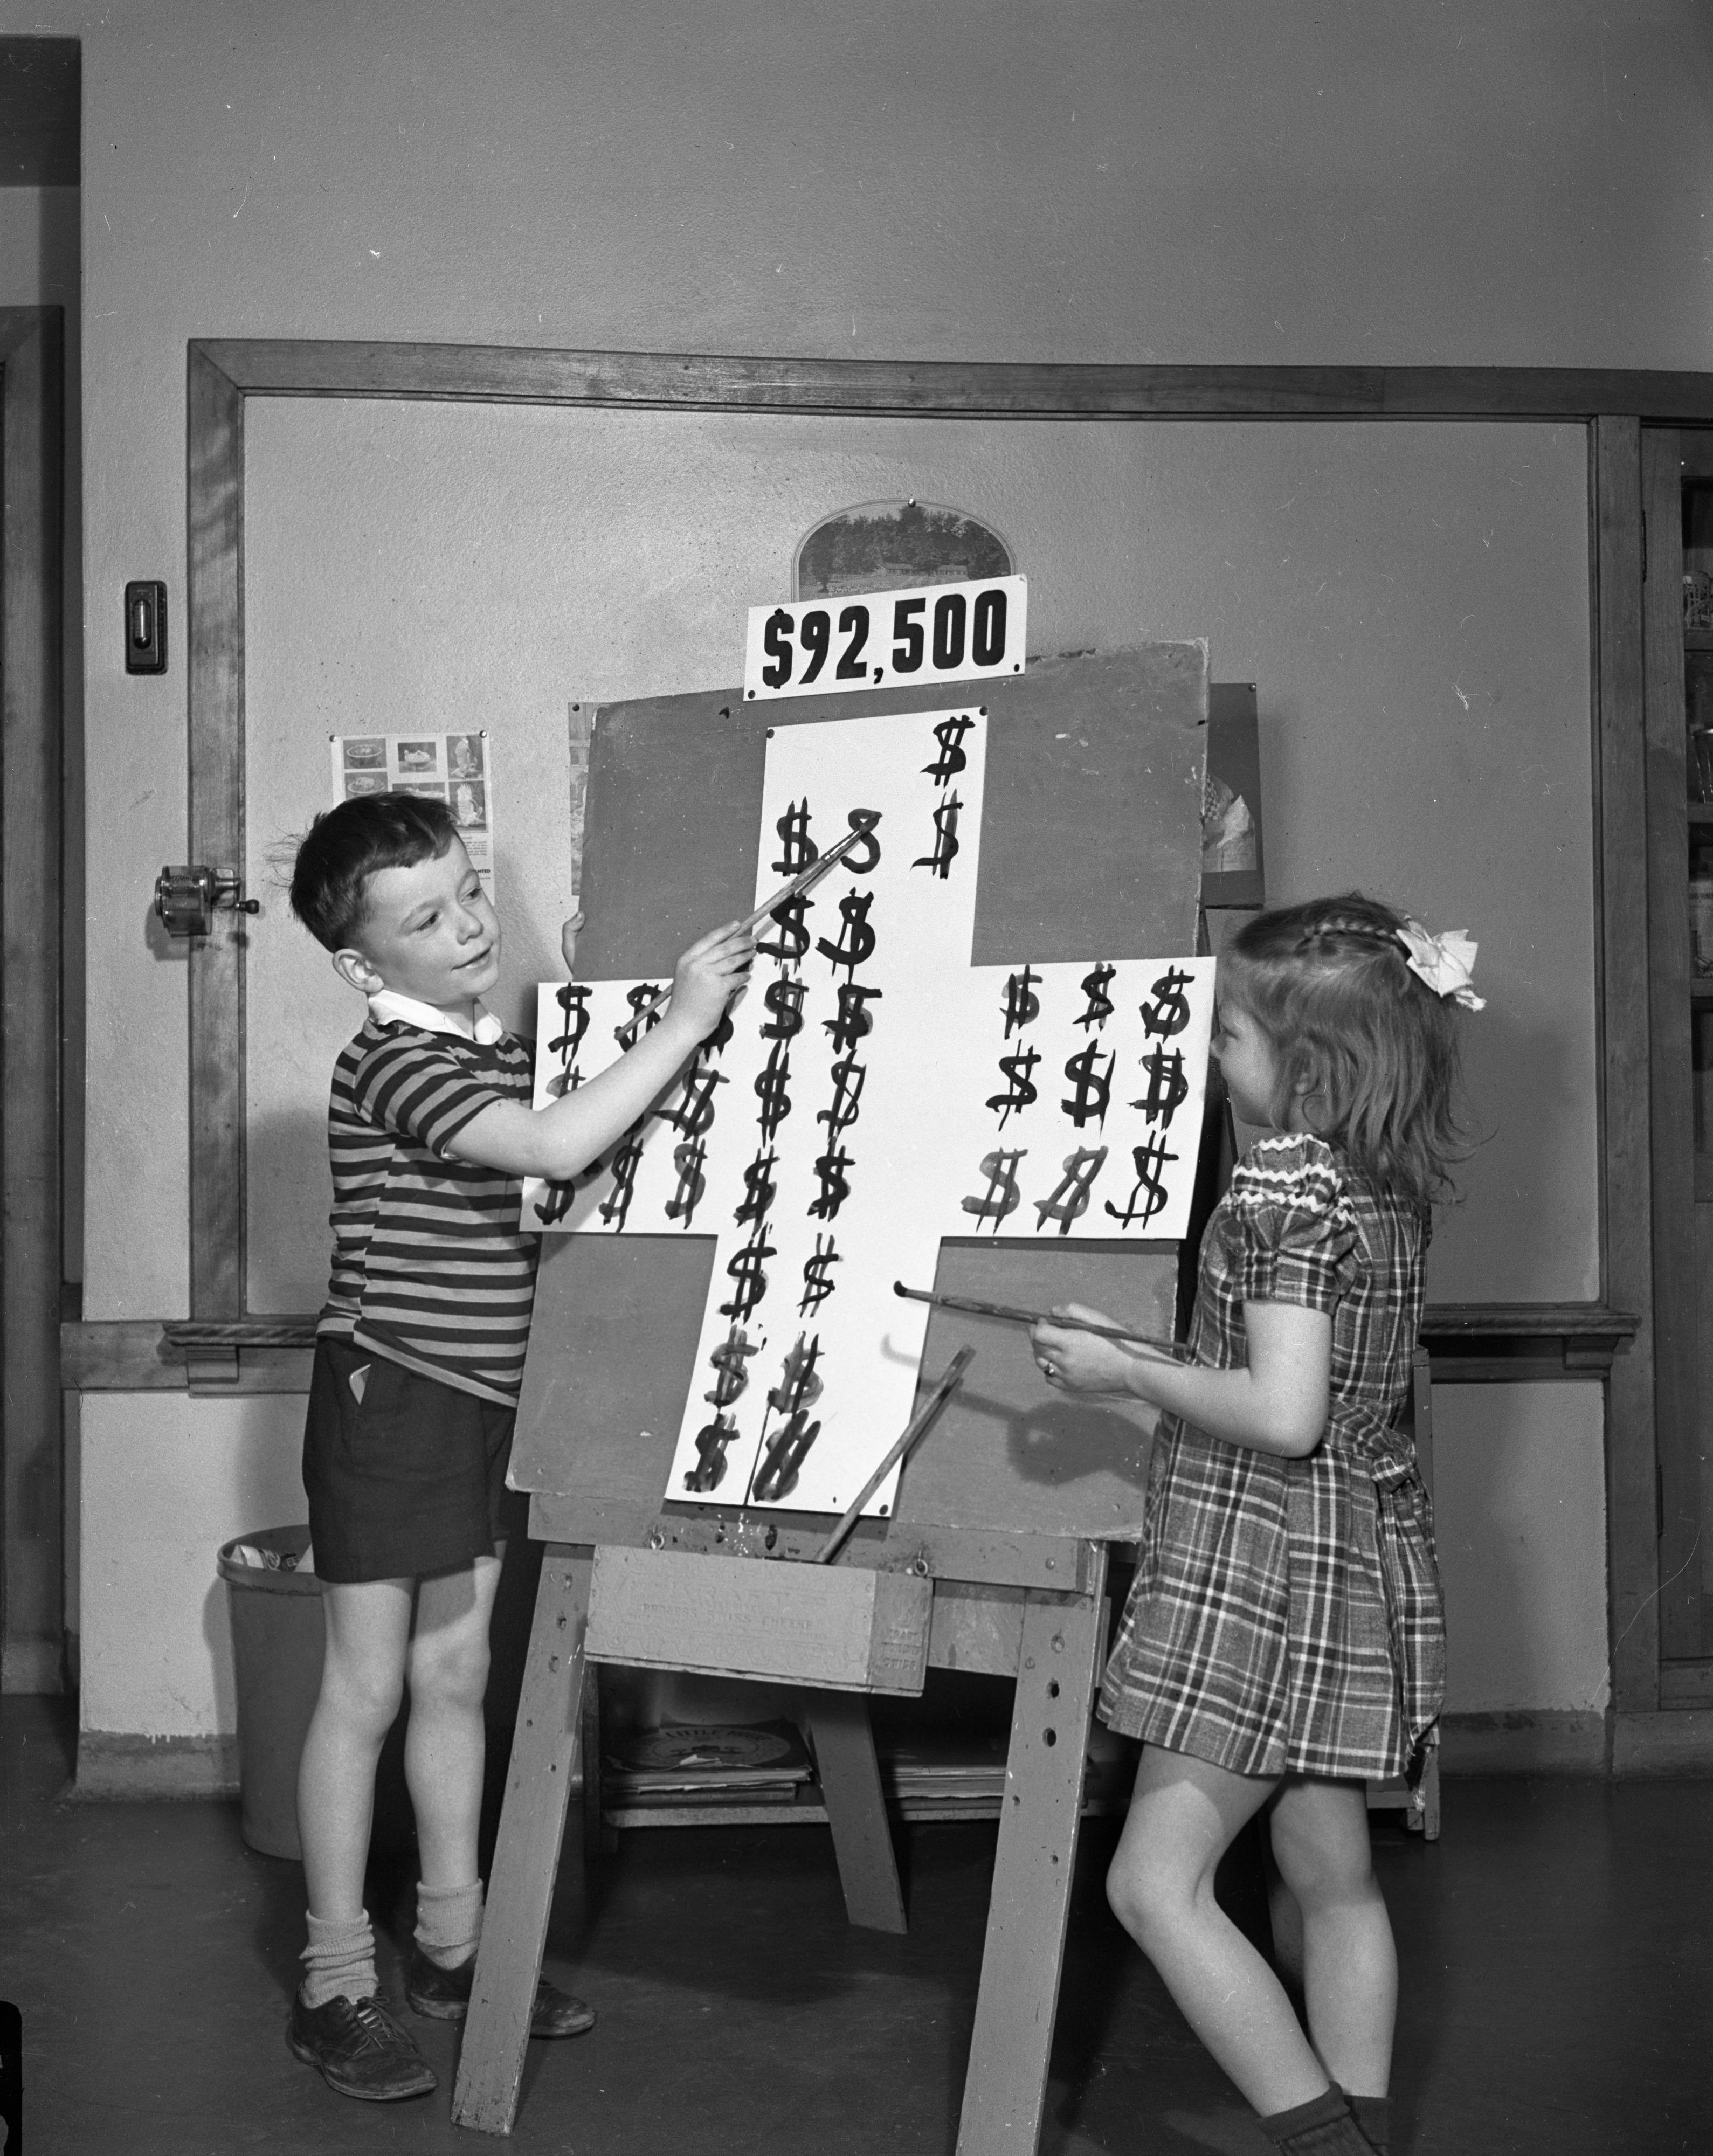 Campbell Smith (representing Ann Arbor) and Saundra Wares (representing the county outside Ann Arbor) Show the Red Cross Drive's Daily Score, March 21, 1944 image